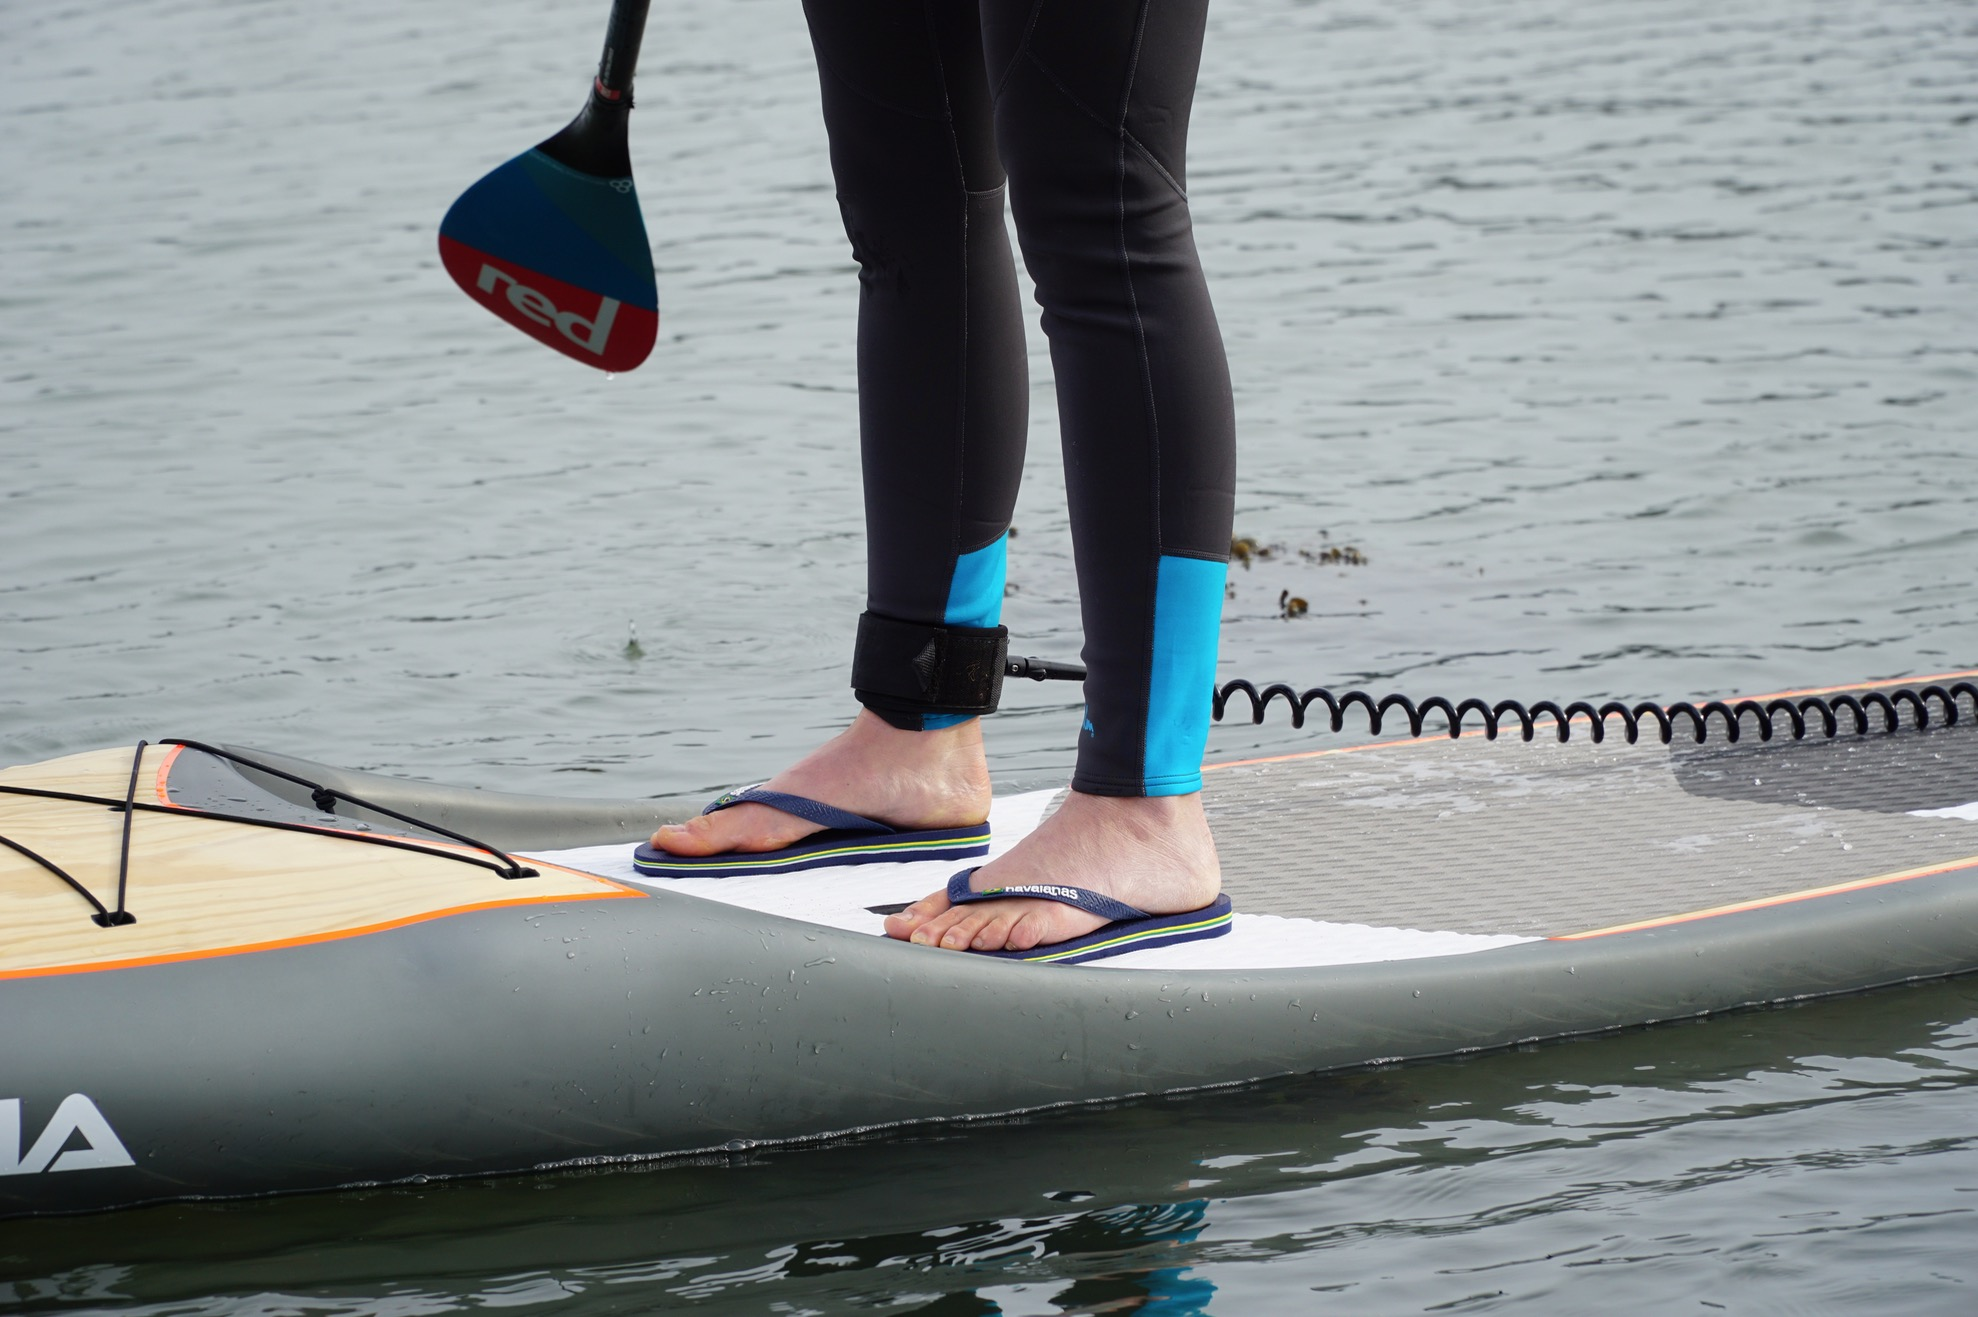 What to wear on your feet paddleboarding? - flip flops